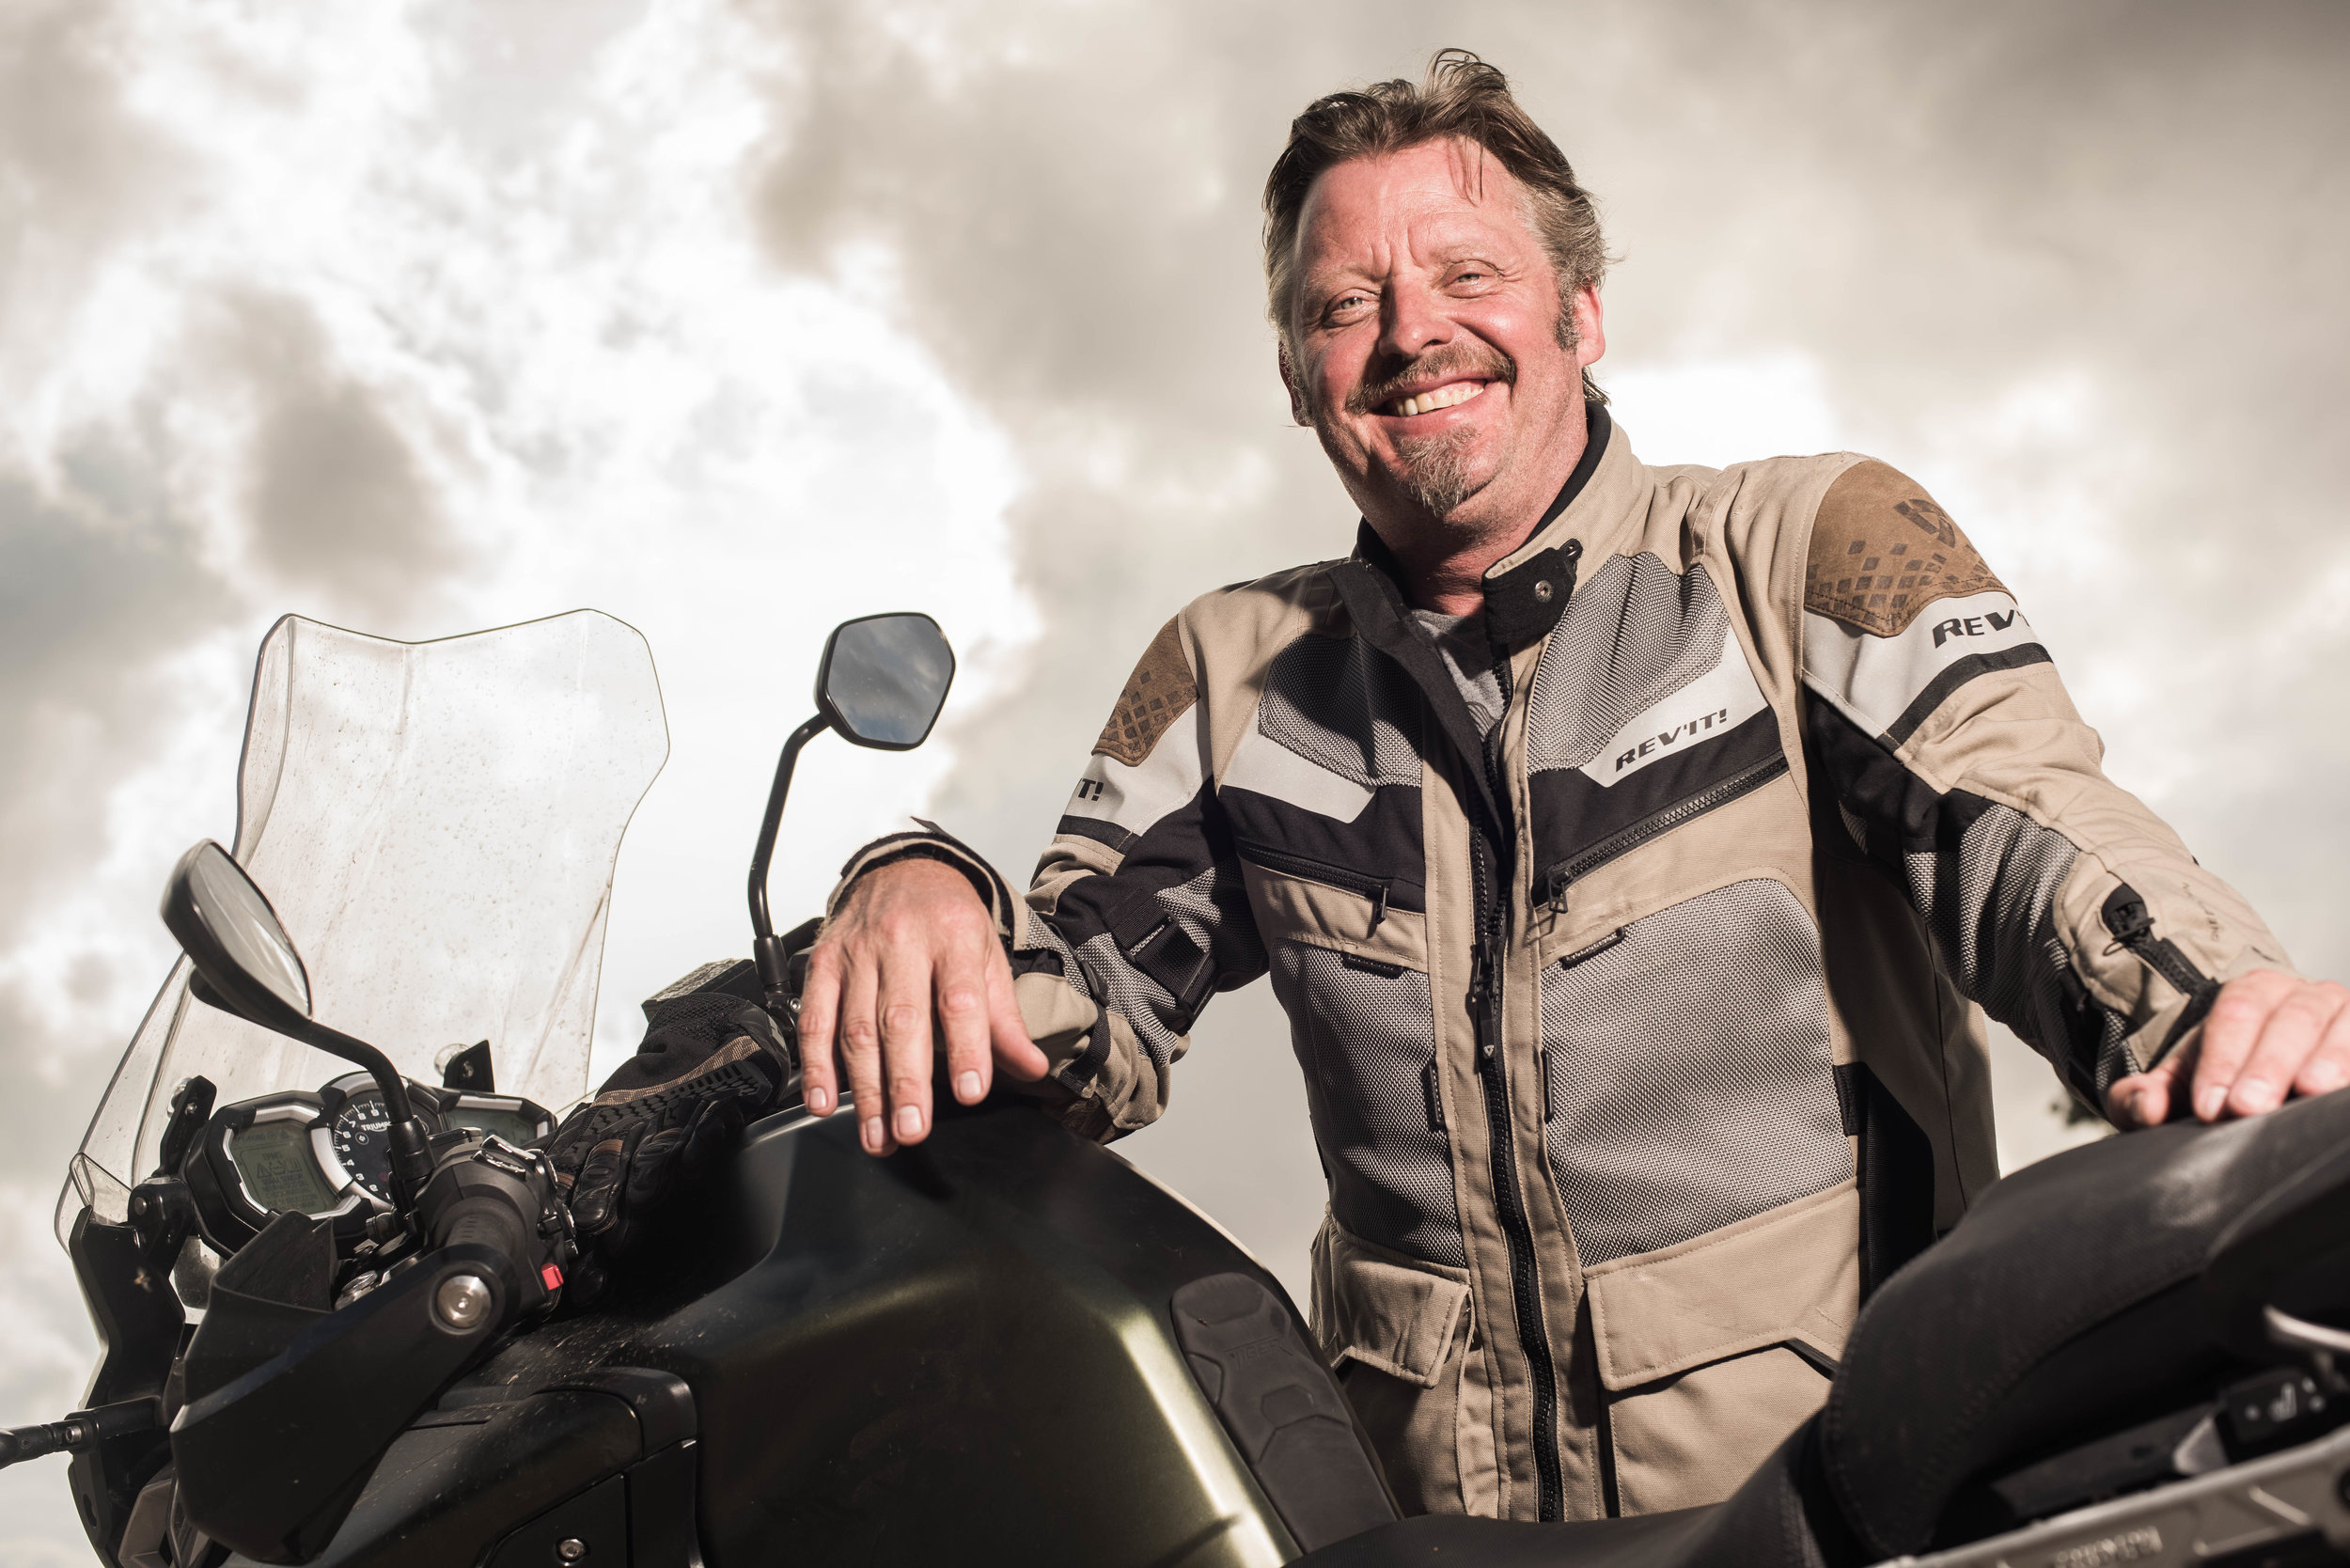 "CHARLEY BOORMAN - Adventurer, Travel Writer, Entertainer.Charley Boorman's charismatic ""let's just do it"" approach to challenges has won him over to a massive TV and literary audience. He is also known for his enthusiasm for motorbikes, as demonstrated in several documentaries of his travels, including two with his friend, actor Ewan McGregor."